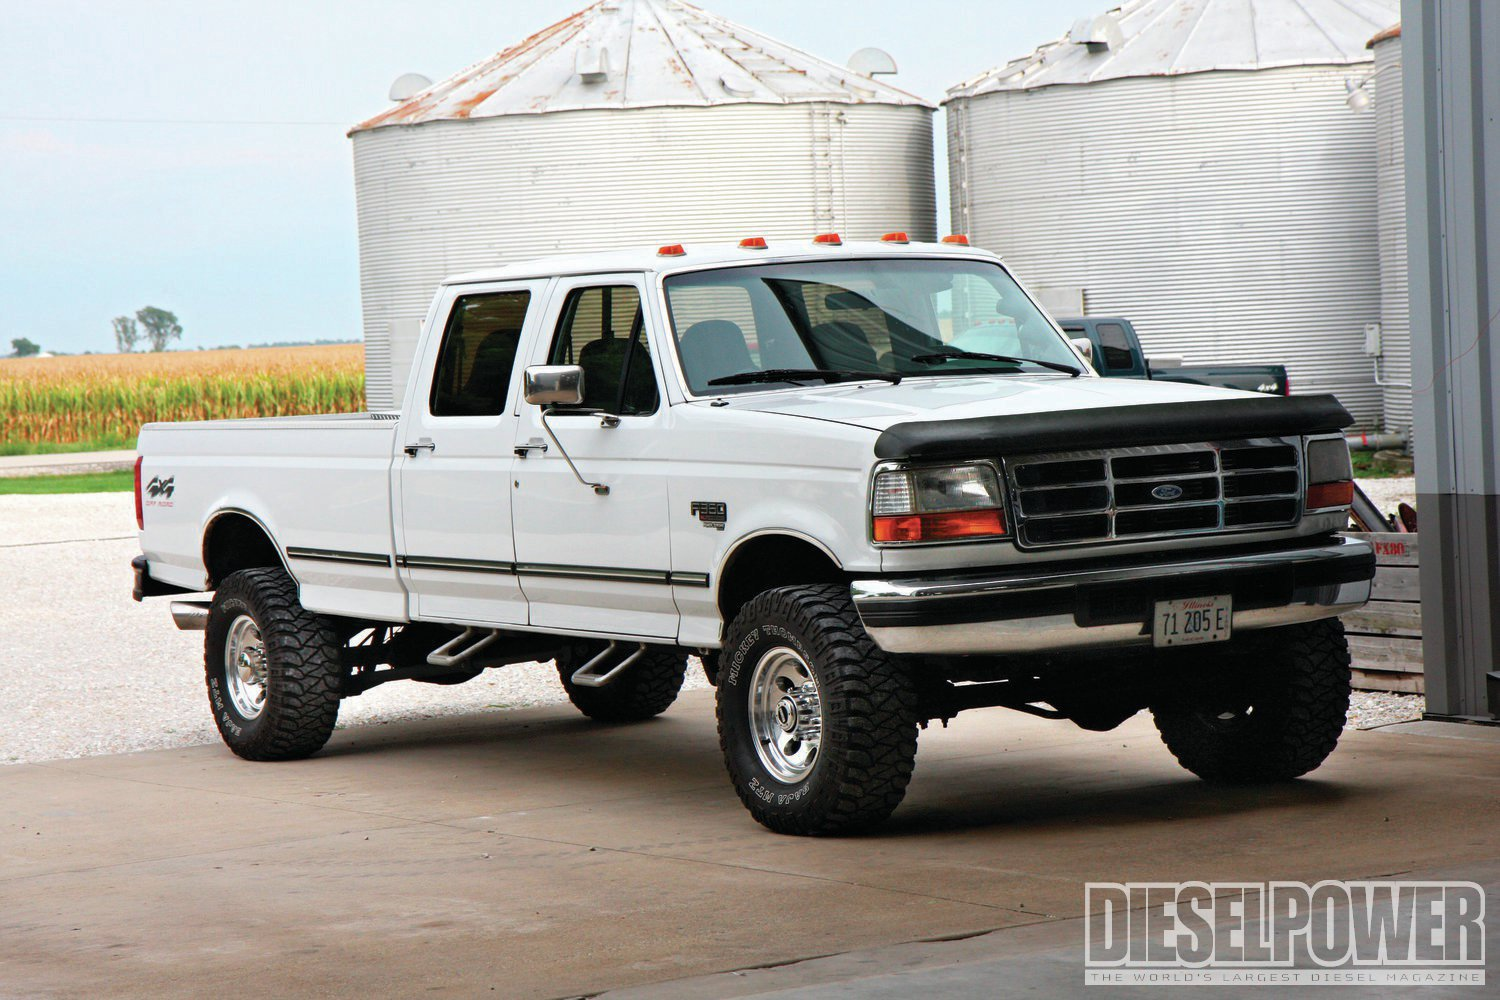 1997 Ford F-350 Fuel System - Keepin' Up With The Joneses' Part 3Truck Trend